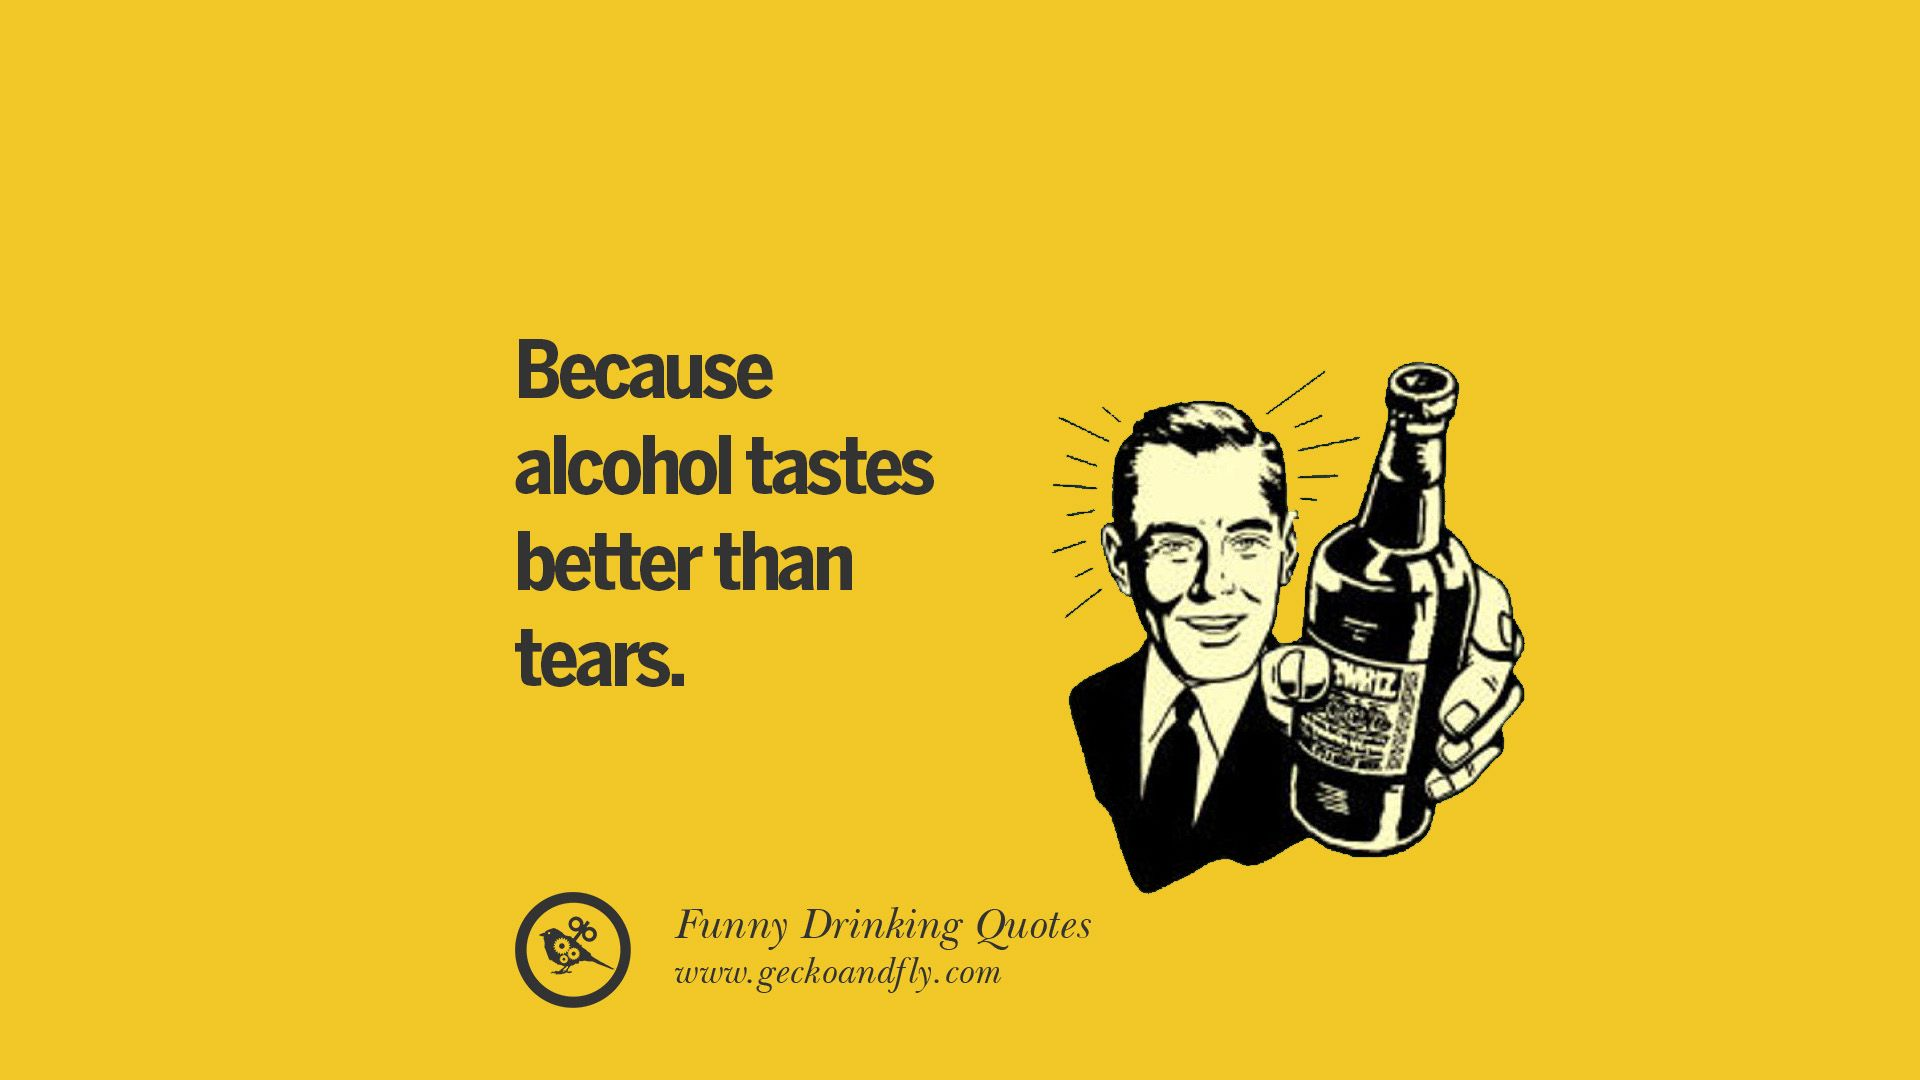 Alcohol Beer Wine Drinking Quotes 23 Jpg 1920 1080 Party Quotes Funny Funny Drinking Quotes Alcohol Quotes Funny